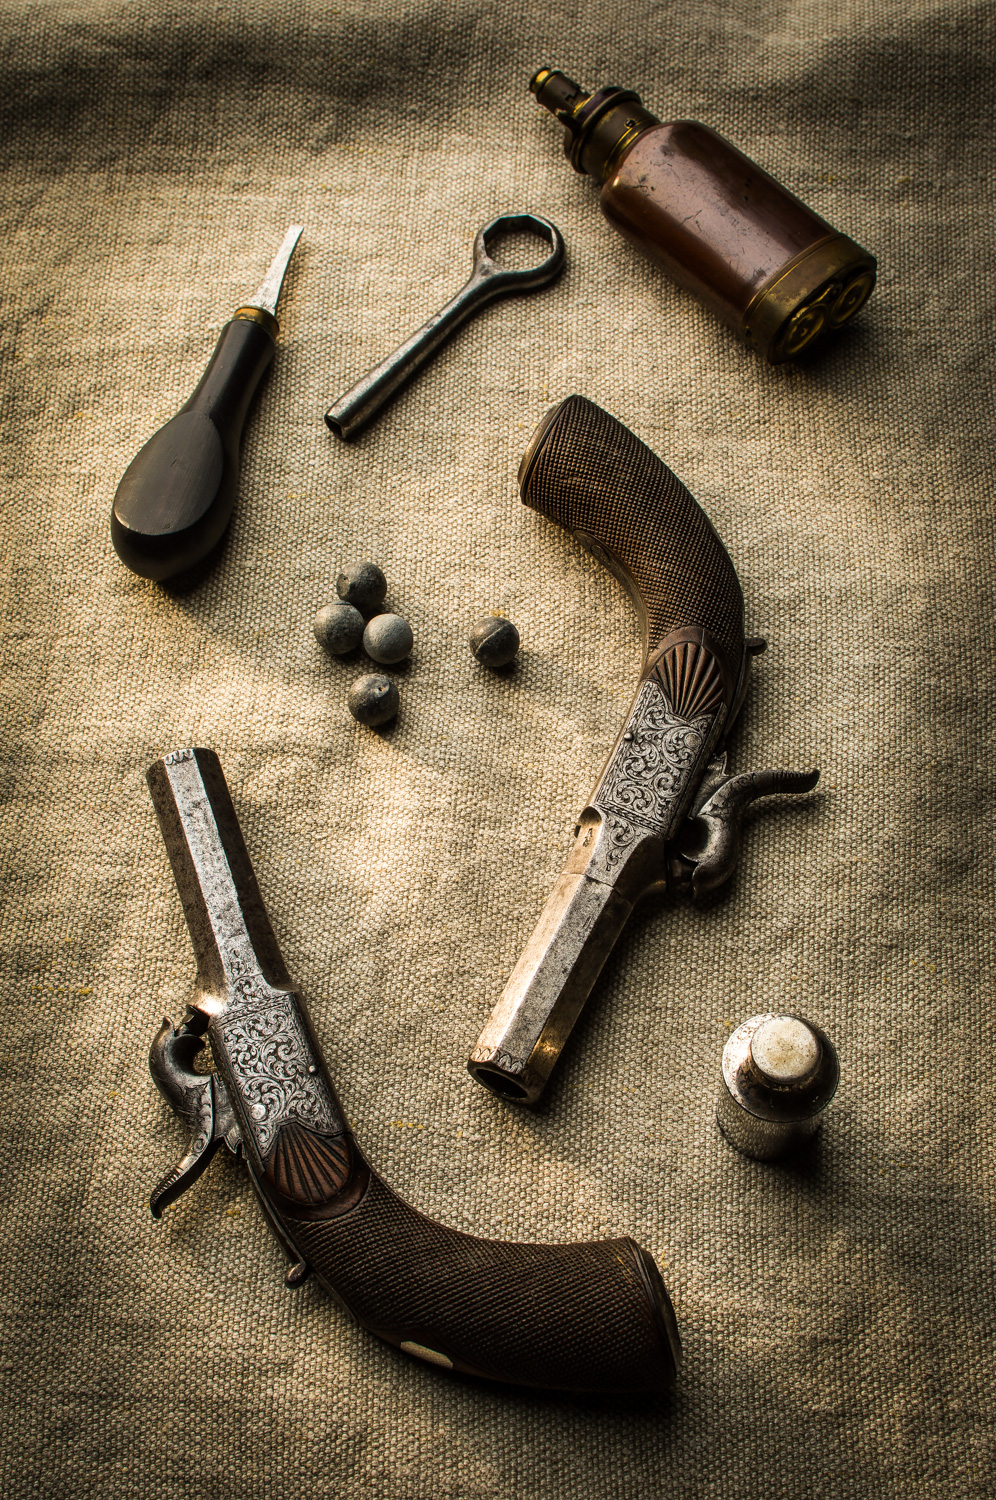 The Latest Offerings From The Gunroom